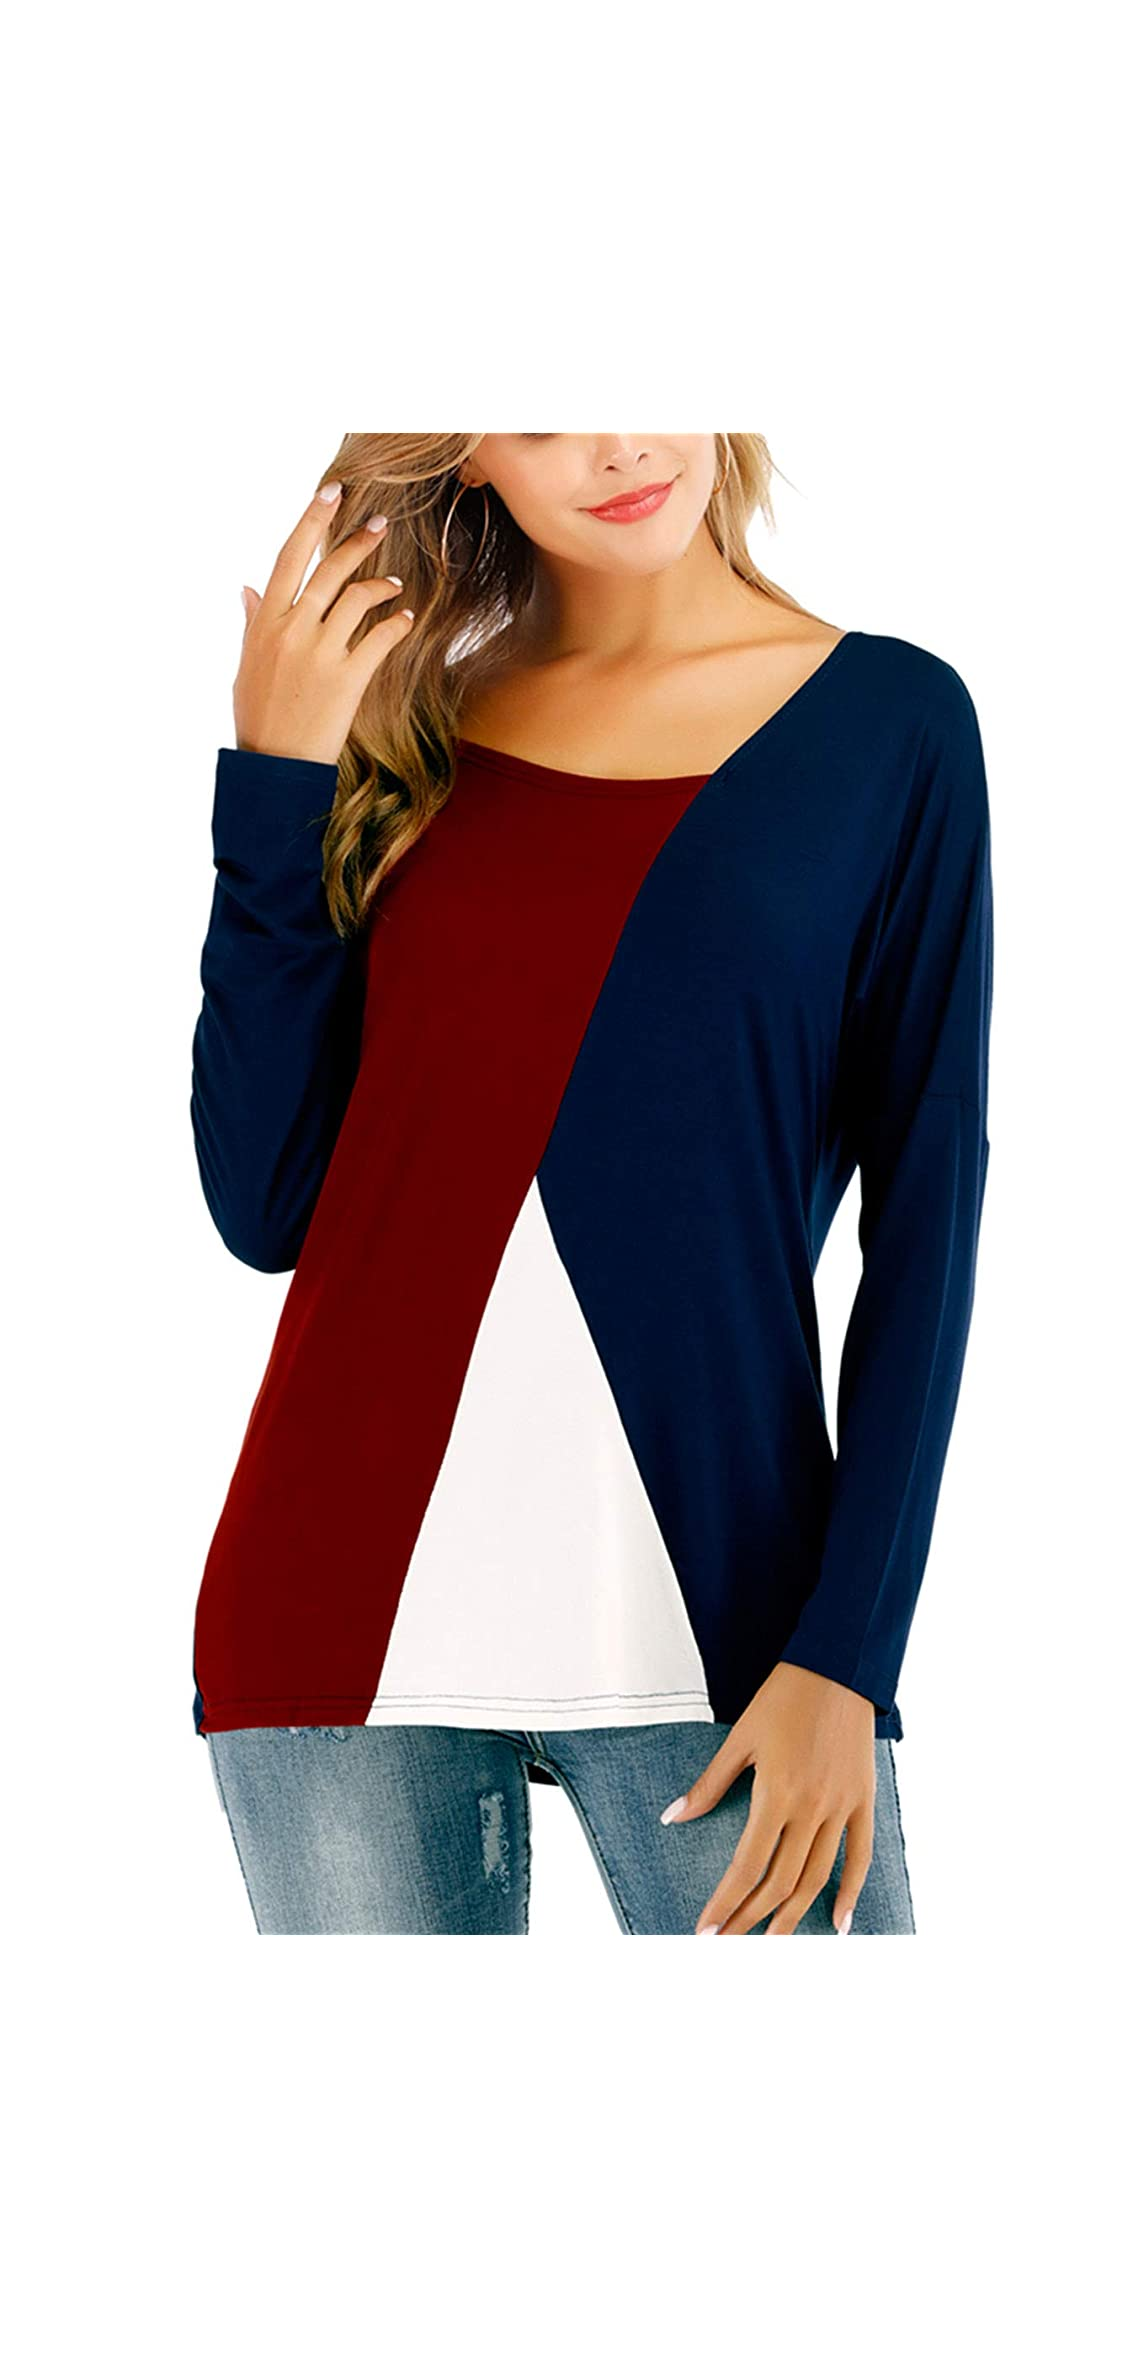 Women's Long Sleeve Modal Shirts For Work Casual Tee Shirts Fits